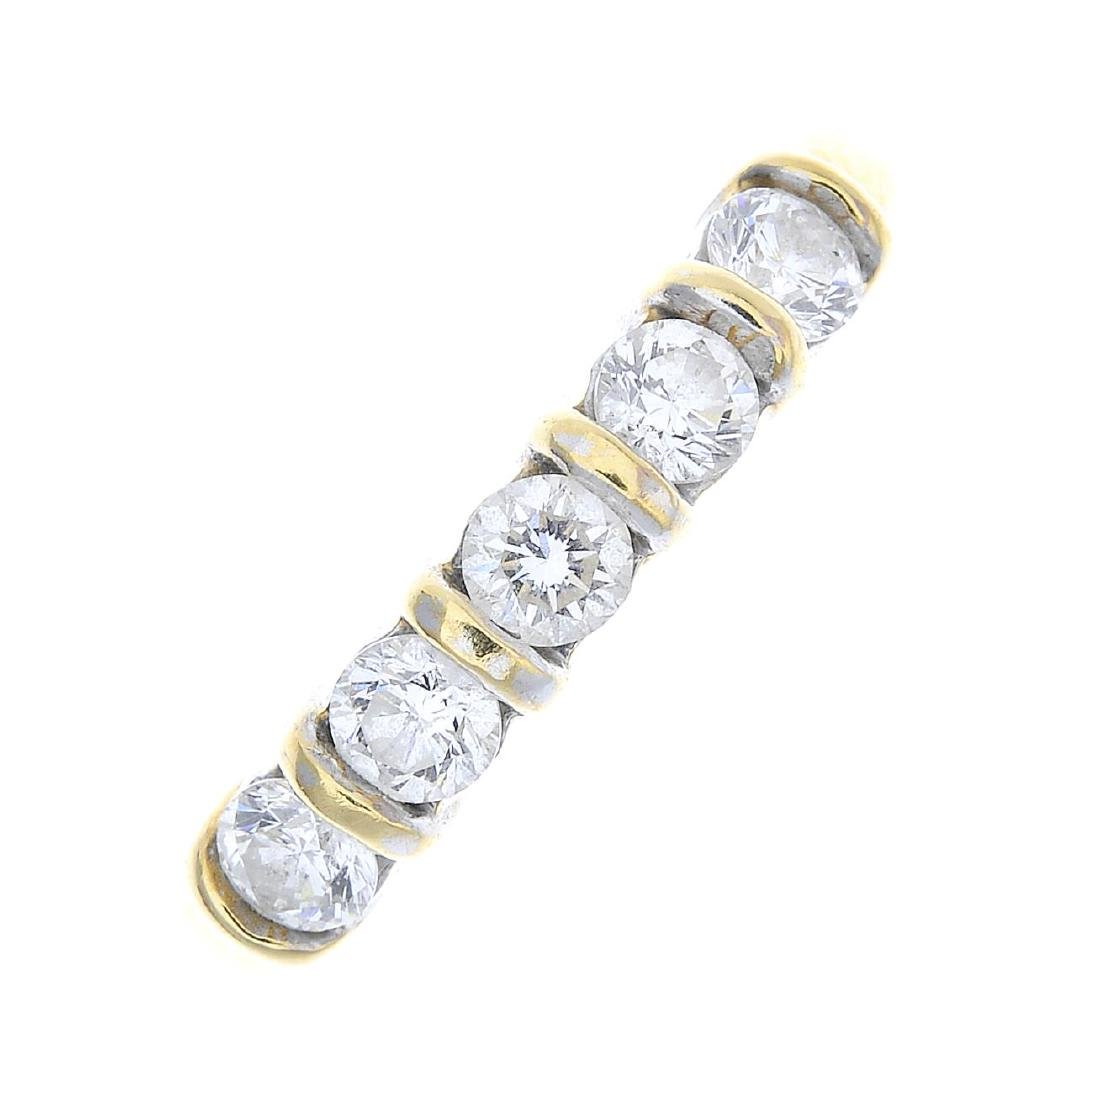 An 18ct gold diamond five-stone ring. Designed as a